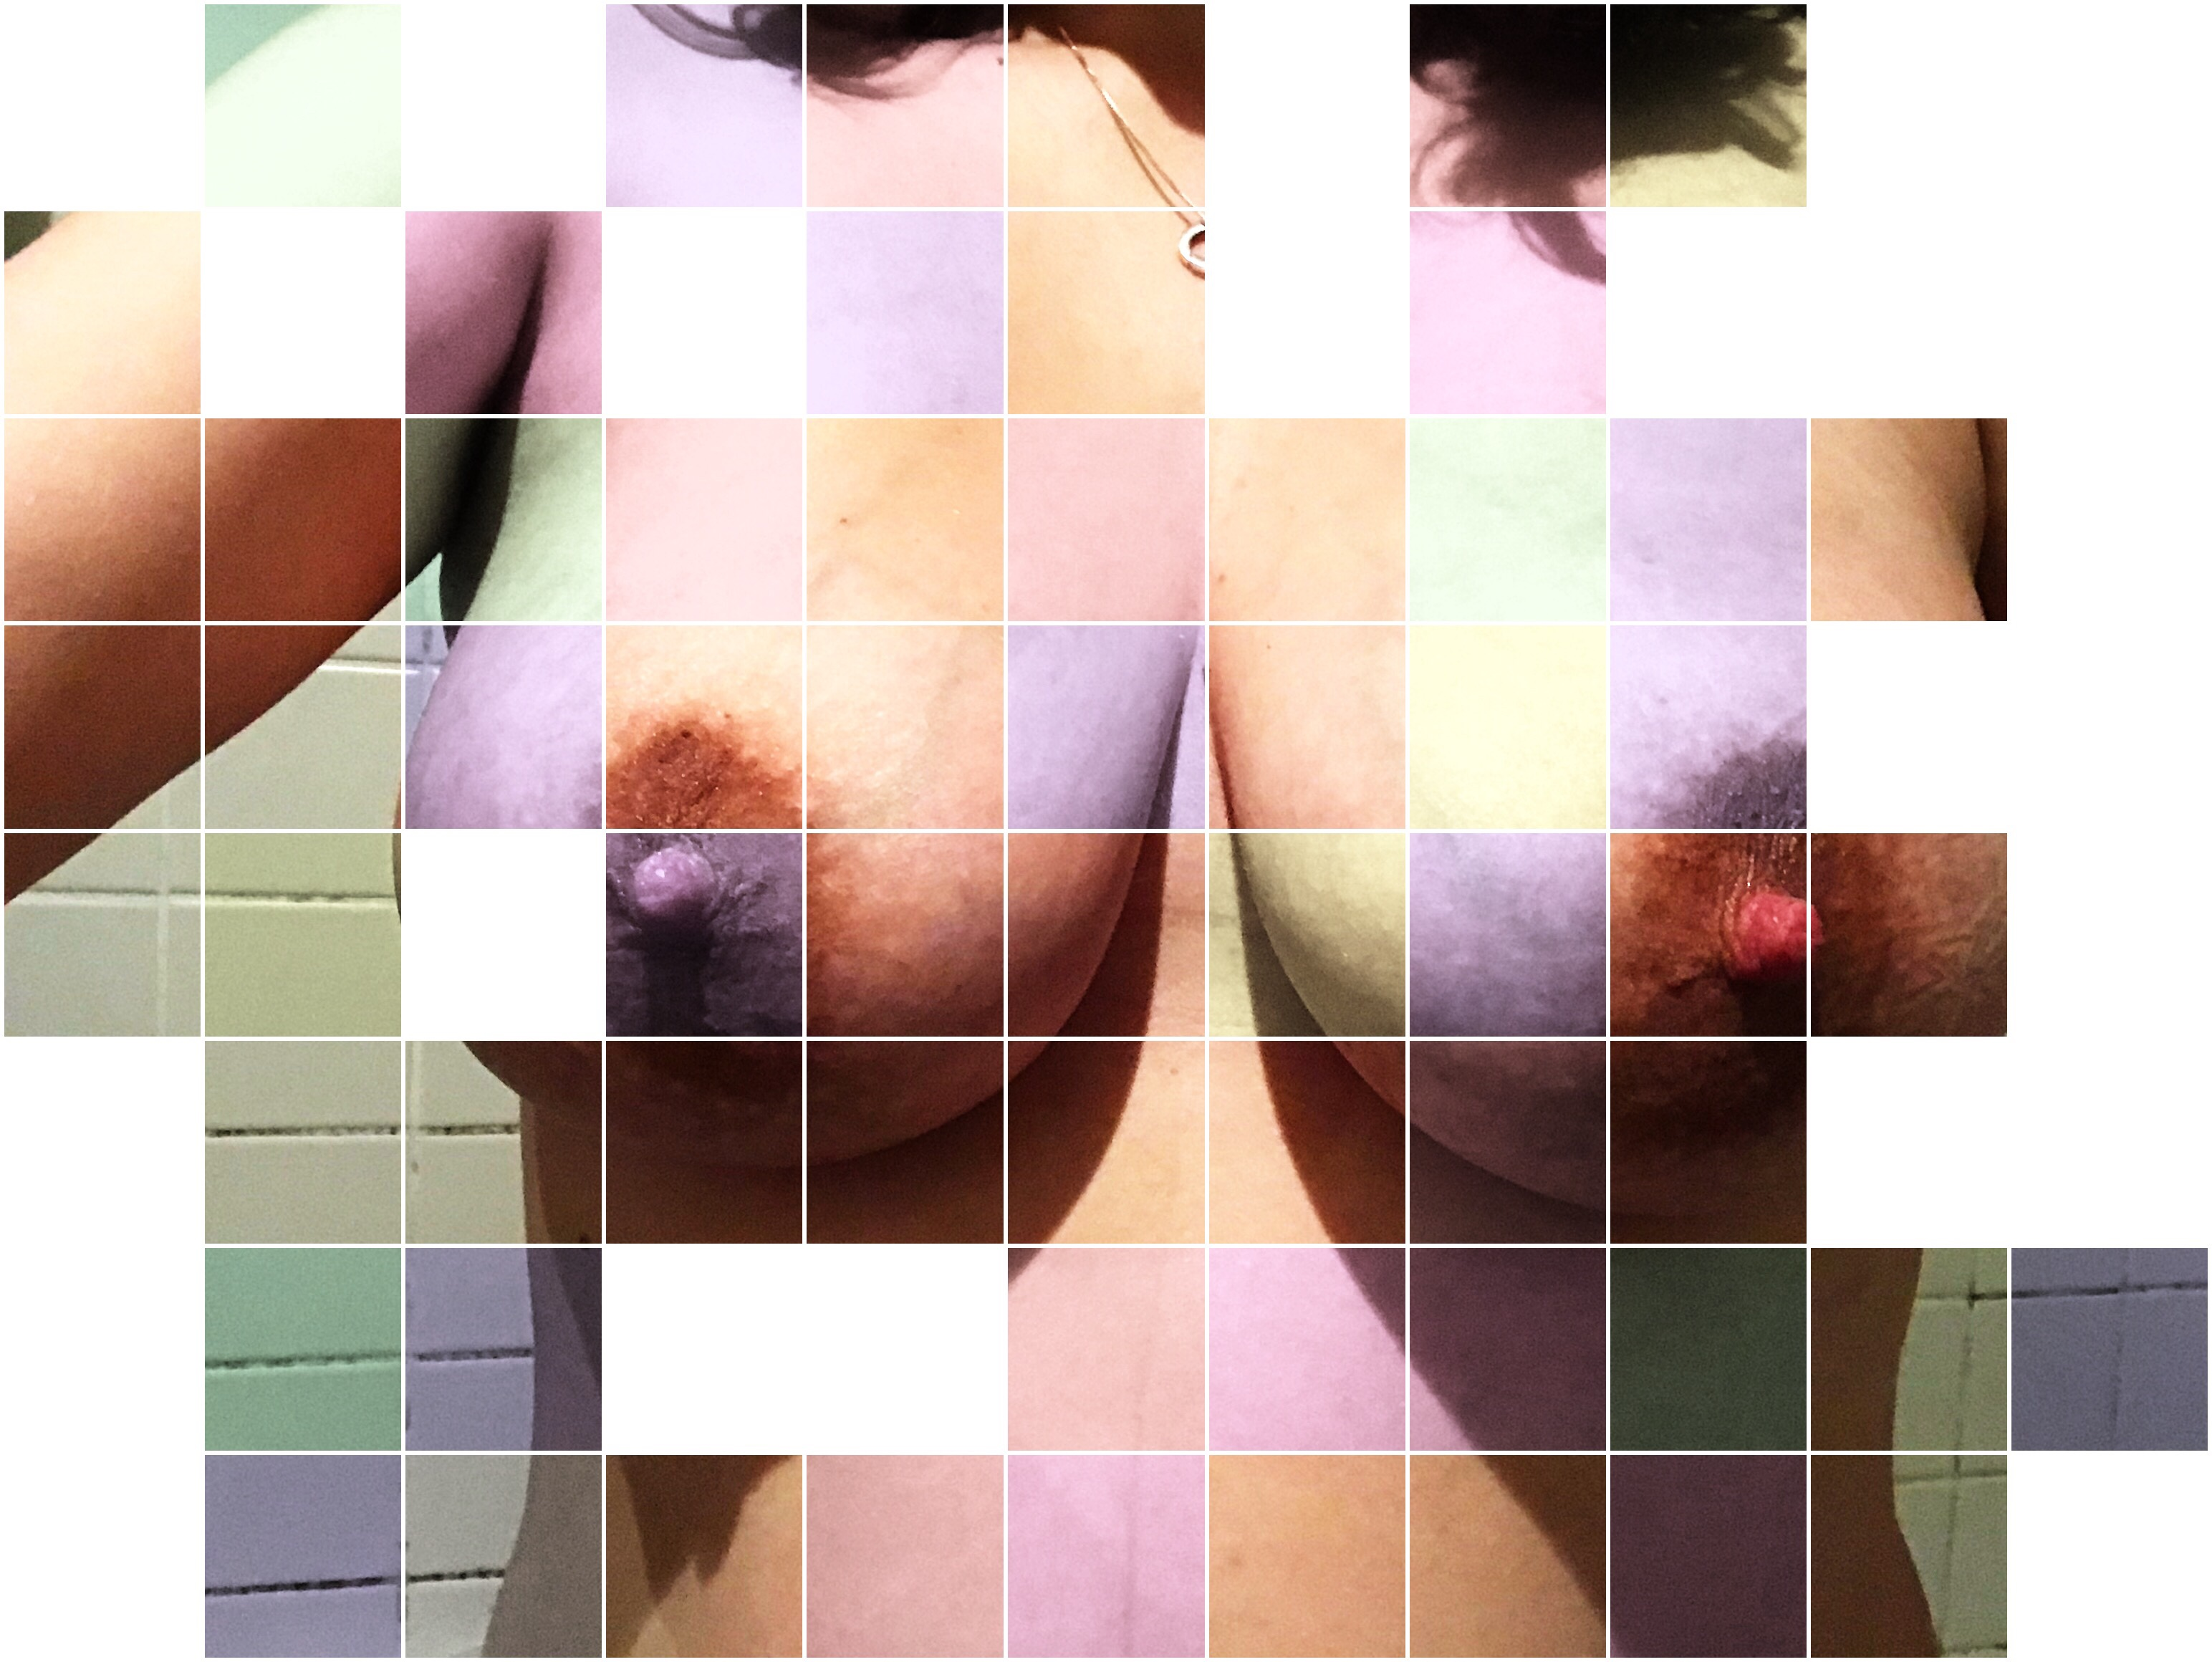 An image of my breasts, divided into squares. Some squares are discoloured, some are blank and some are normal.